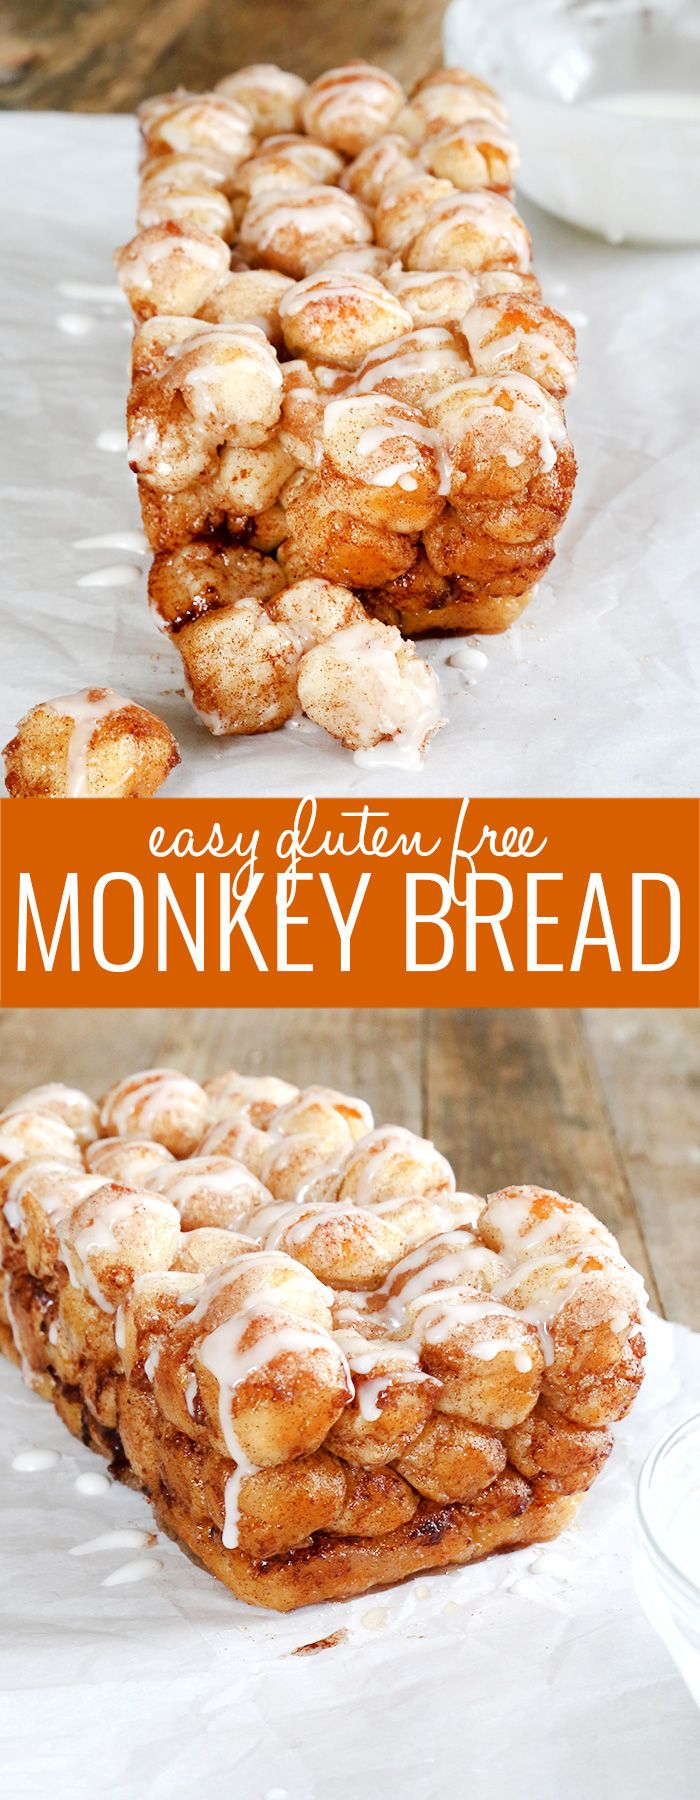 Super easy to make, this gluten free monkey bread is perfect for the little hands of little helpers and will make your house smell like amazing cinnamon-goodness! http://glutenfreeonashoestring.com/super-easy-gluten-free-monkey-bread/